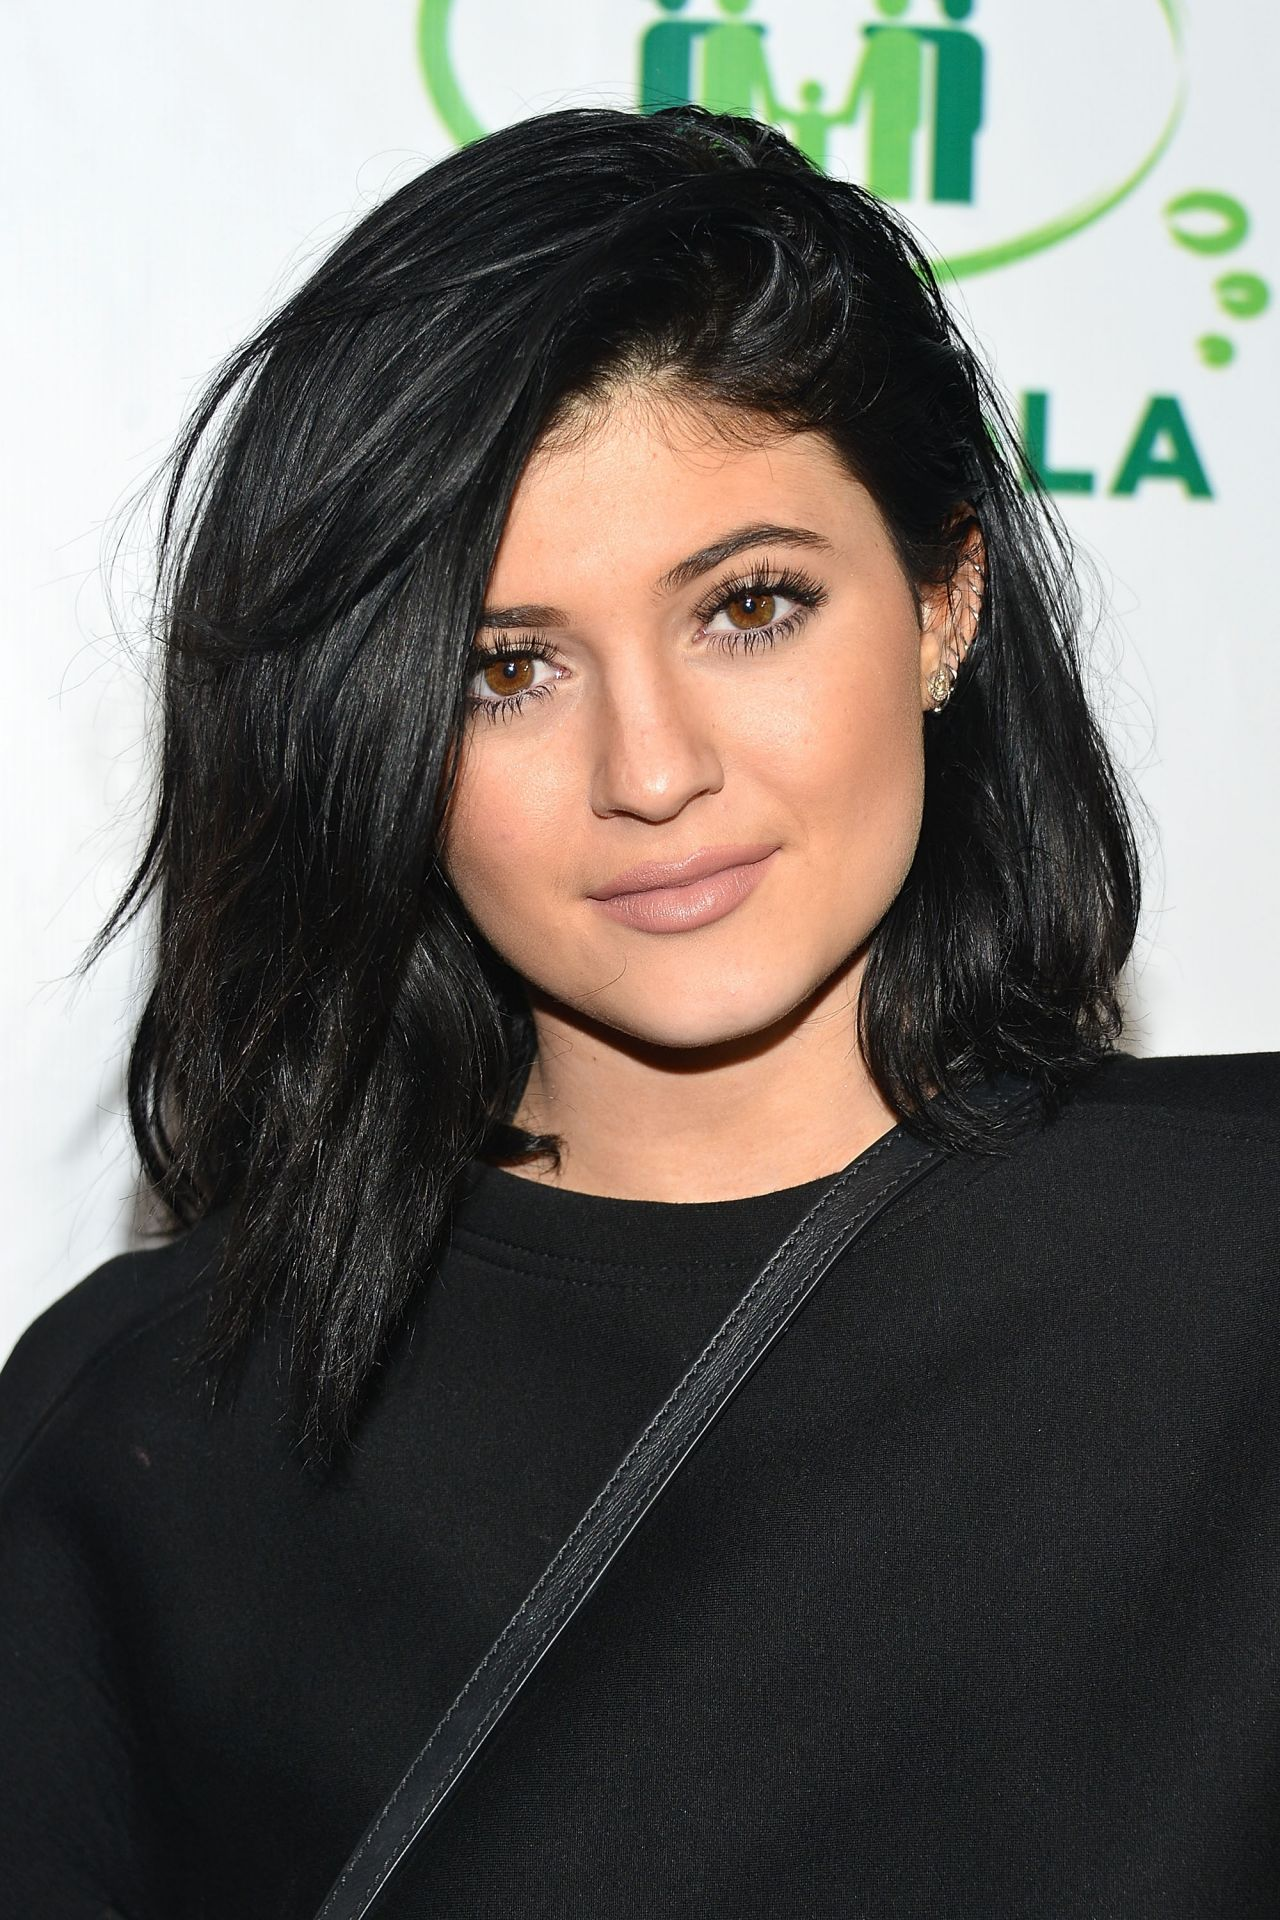 Kylie Jenner Depressed: The Imagine Ball At The House Of Blues In